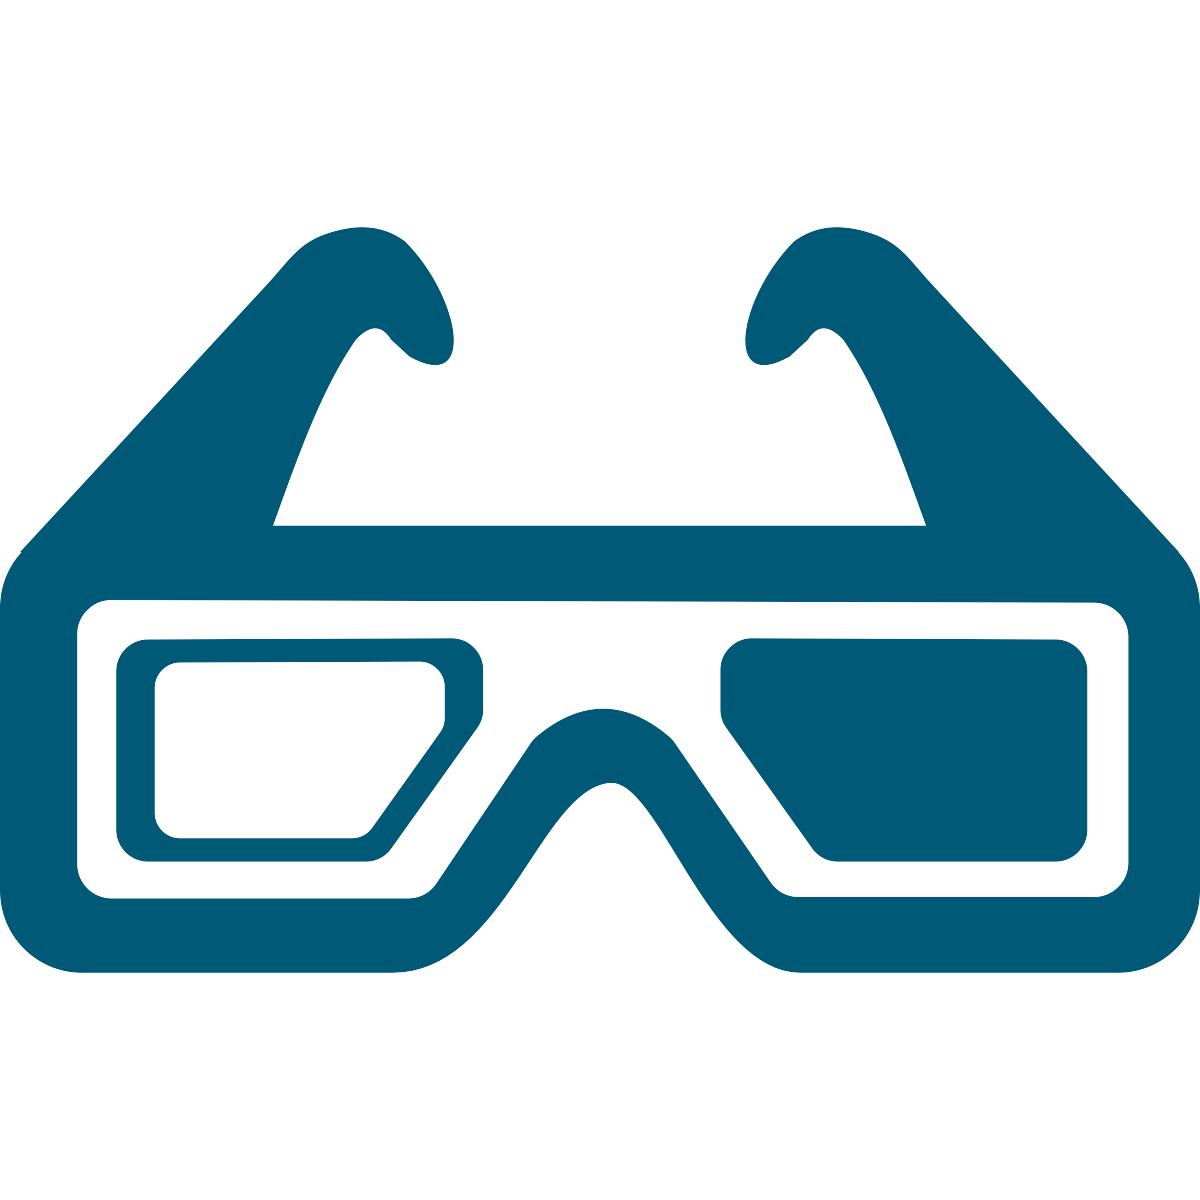 image of 3D glasses